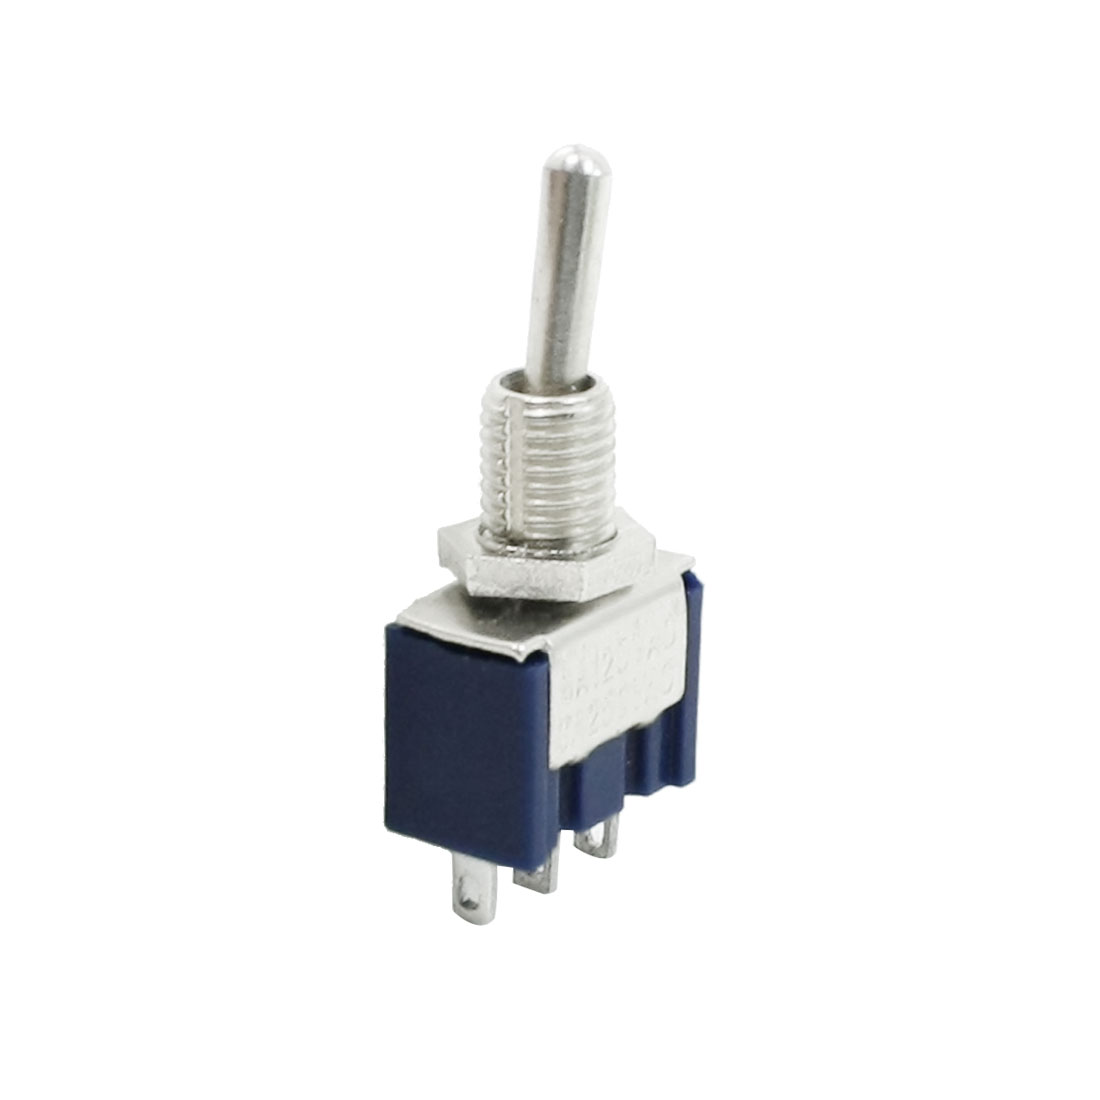 6A/125VAC 3A/250VAC 3-Pin SPDT On/On 2 Position Latching Mini Toggle Switch